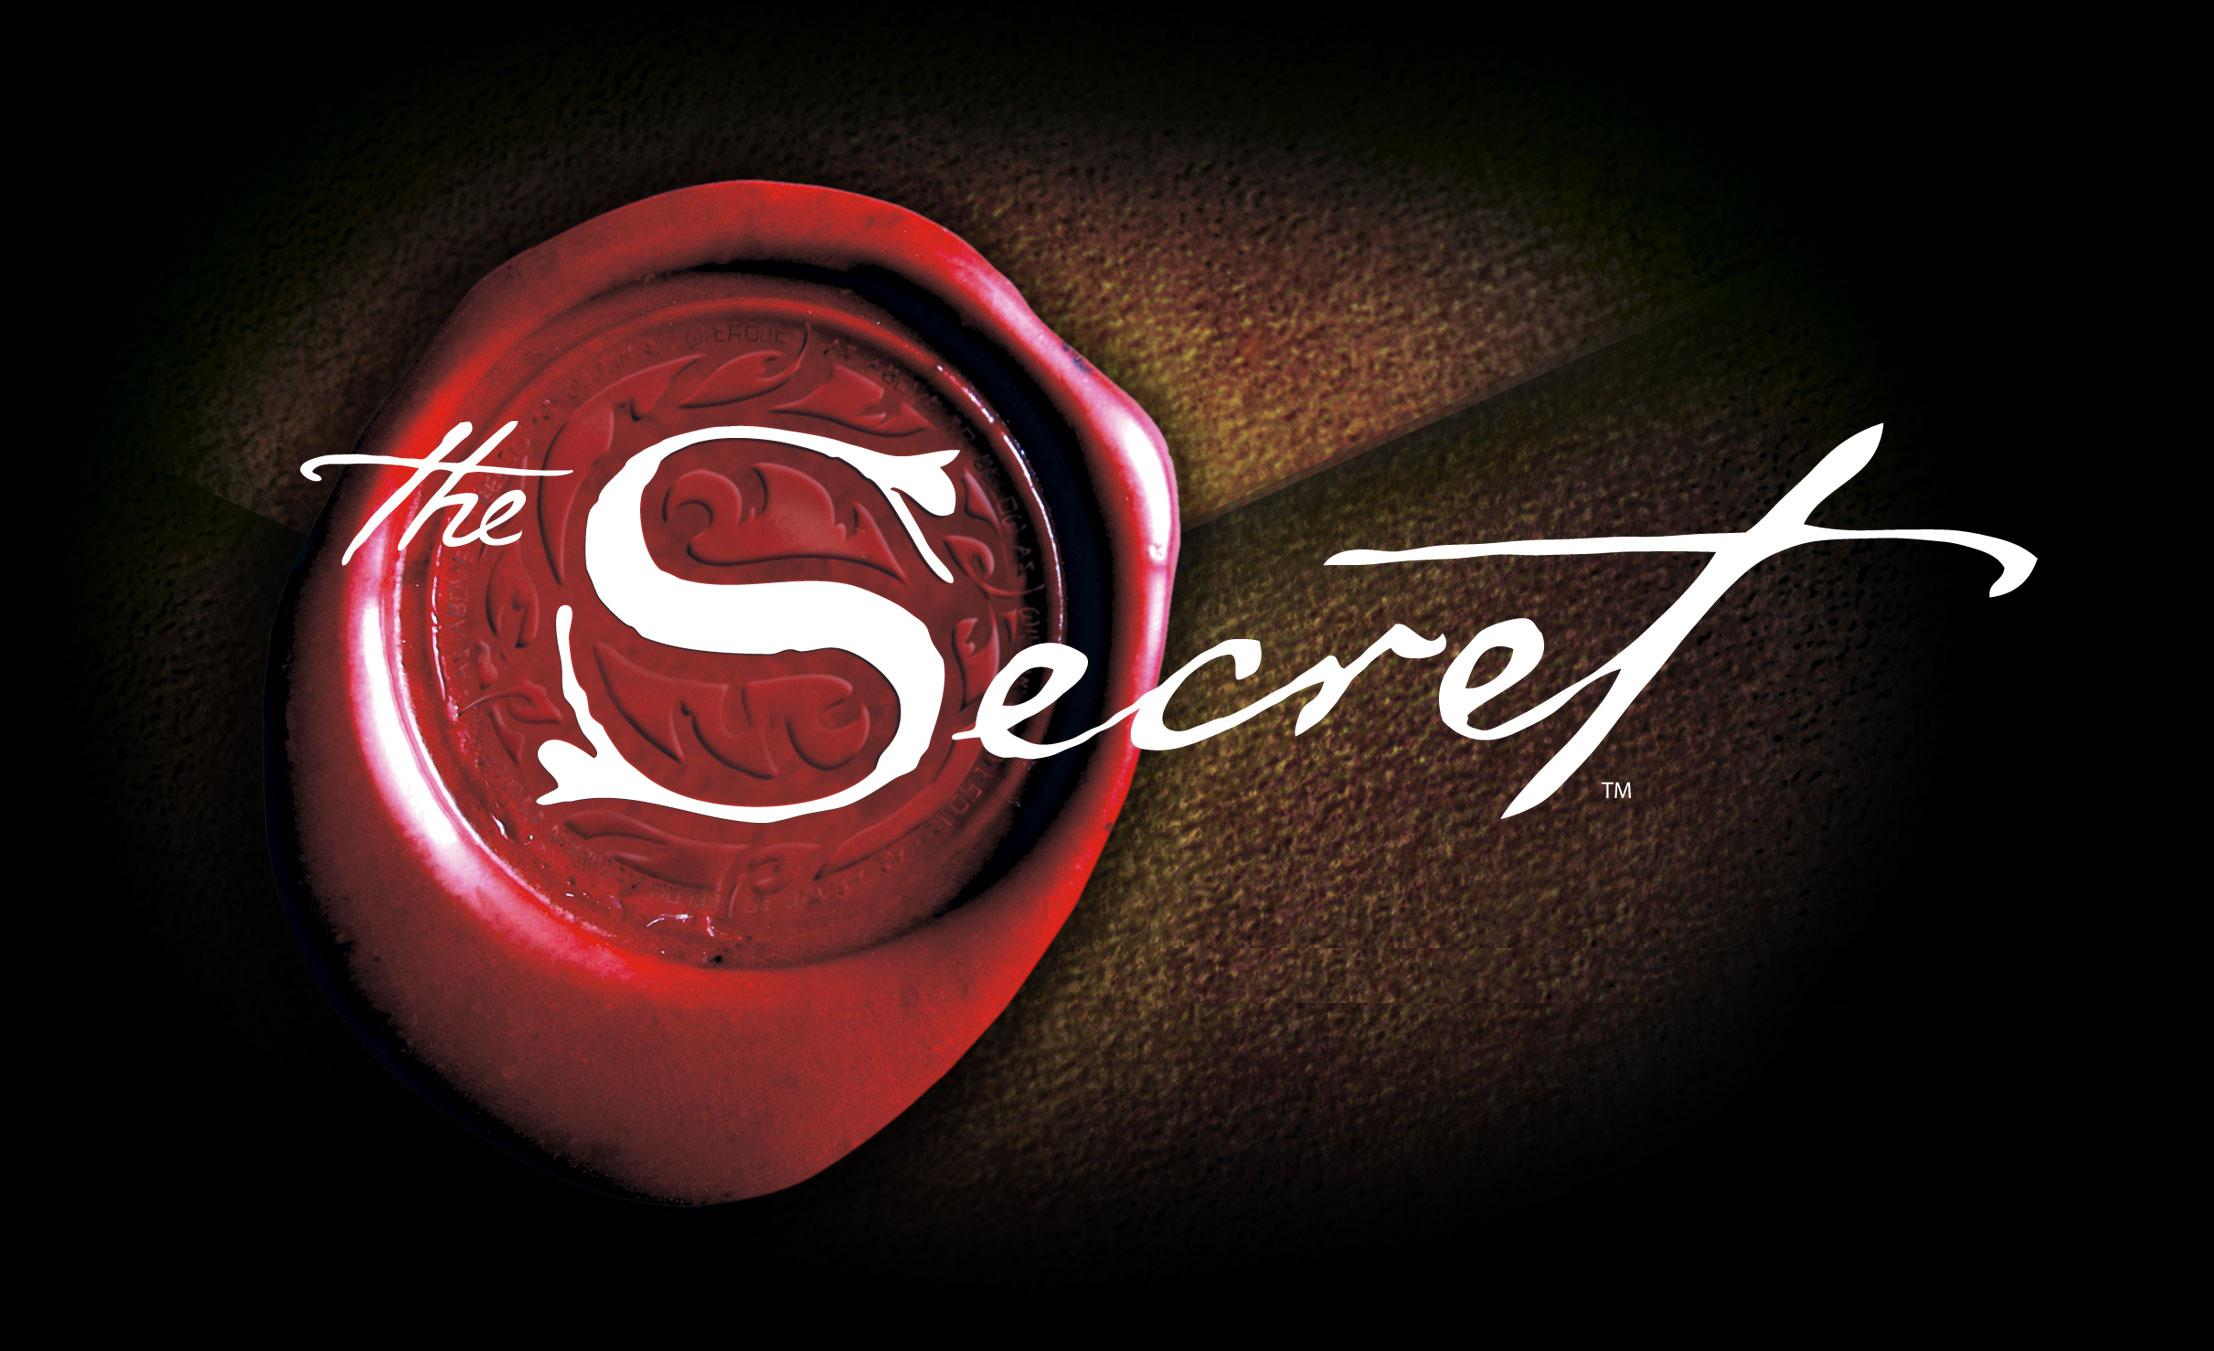 Index of Secret http://www.identi.li/index.php?topic=95505